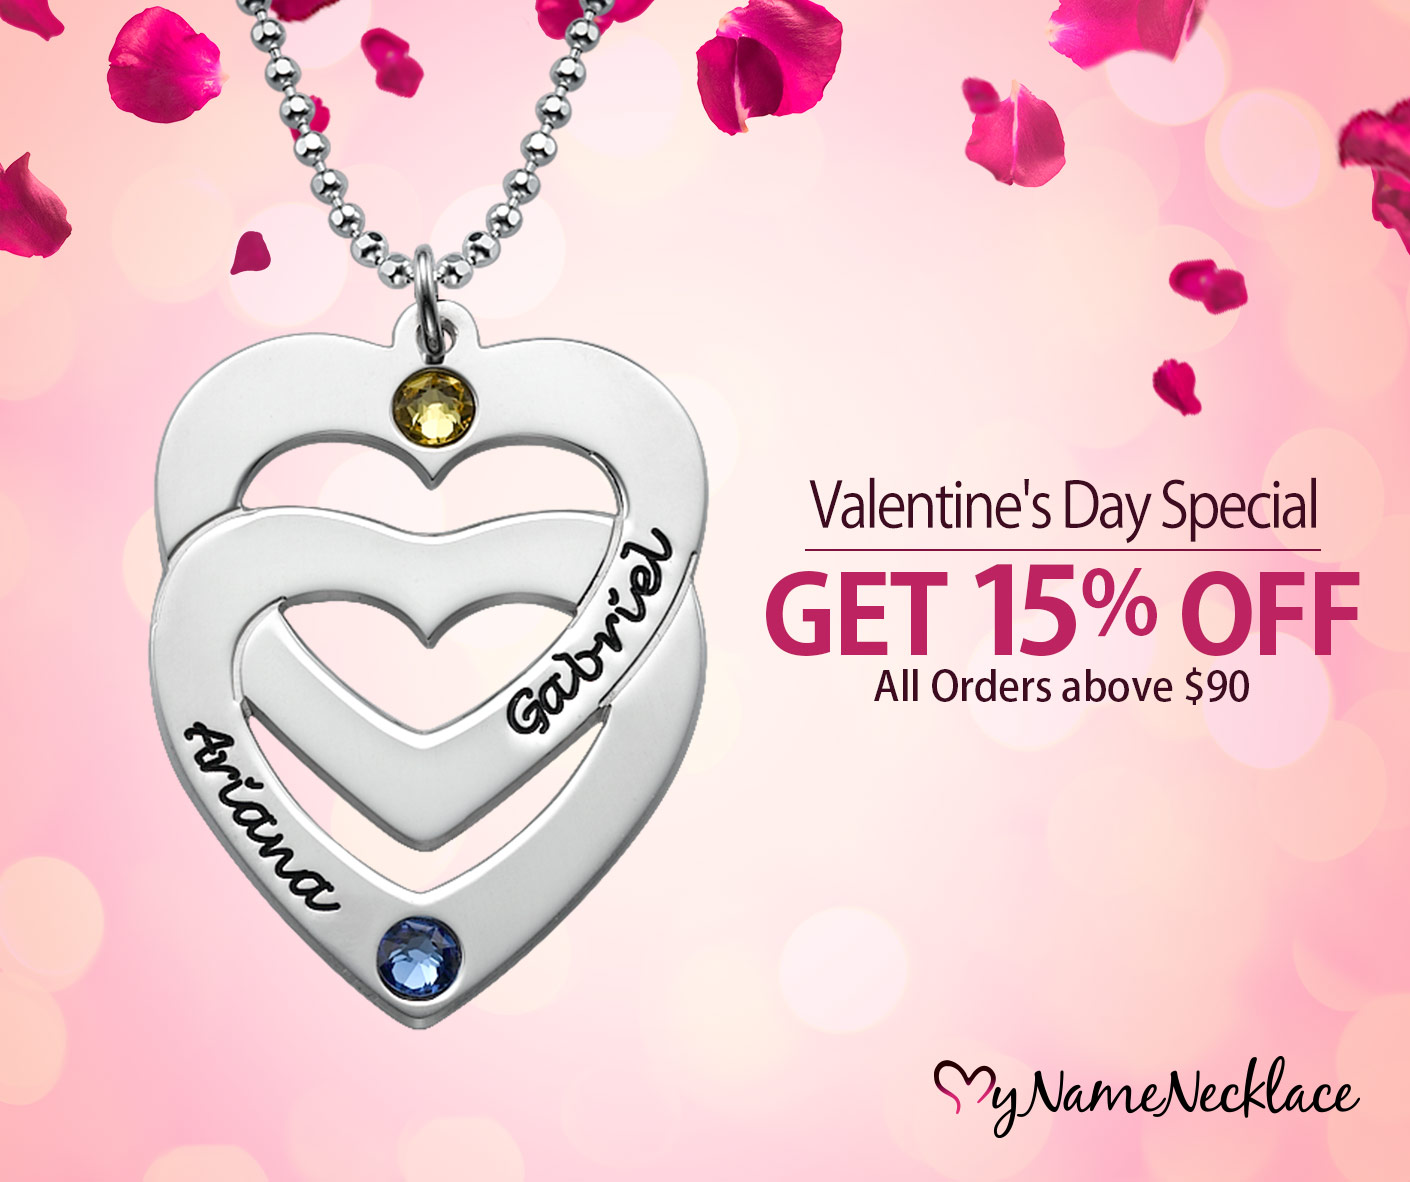 Valentine's Day Sale at MyNameNecklace